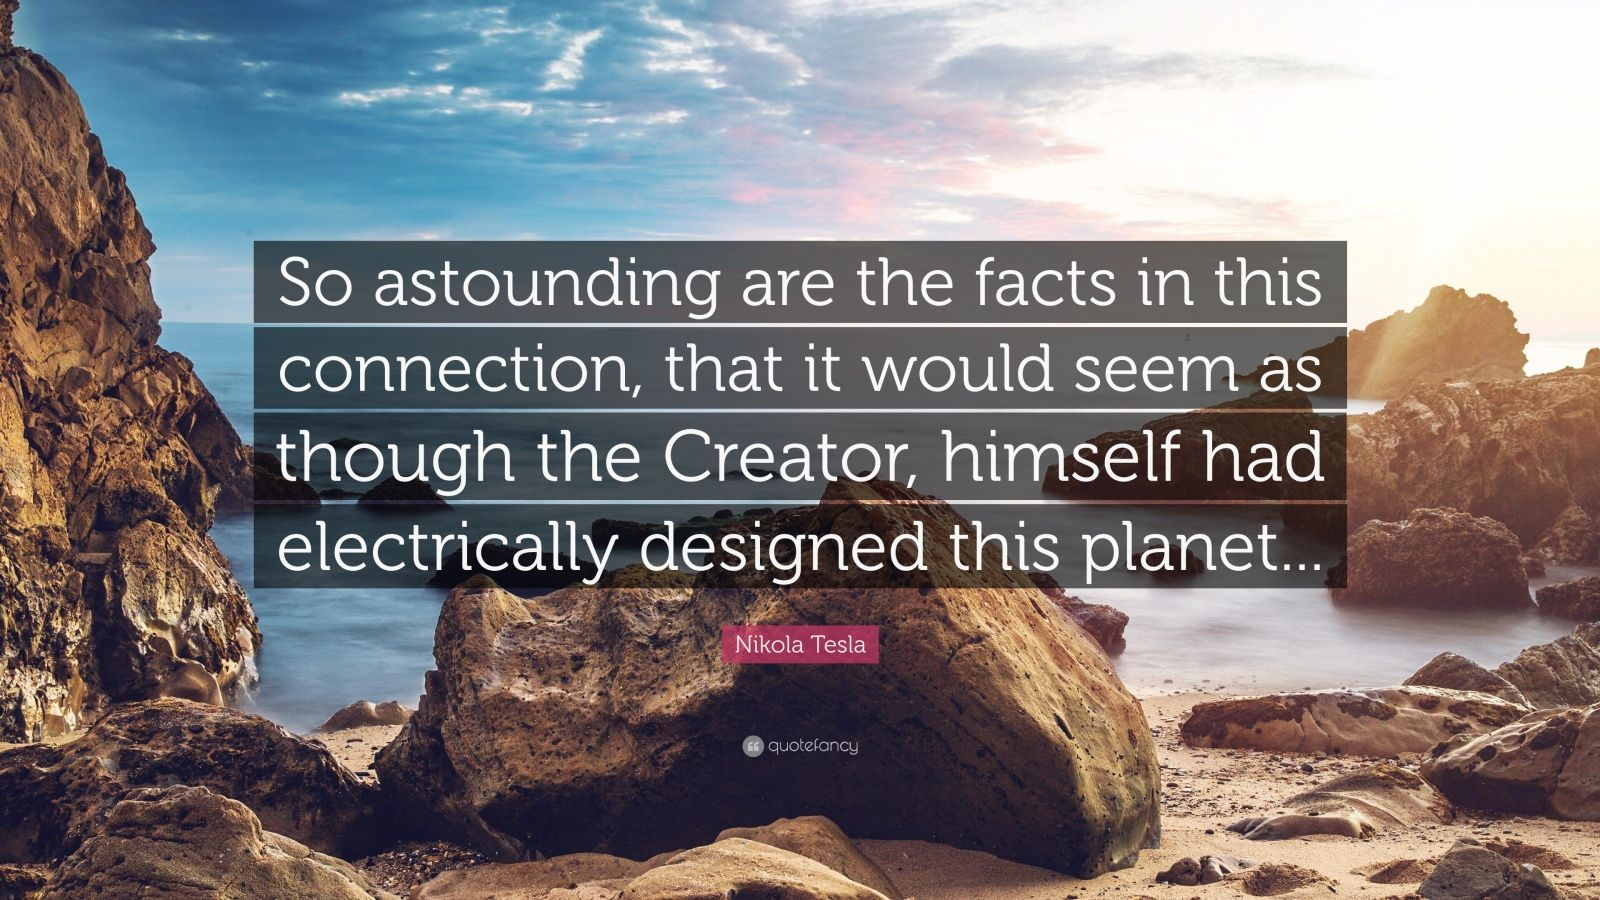 """Nikola Tesla Quote: """"So astounding are the facts in this connection, that it would seem as though the Creator, himself had electrically designed this planet..."""""""